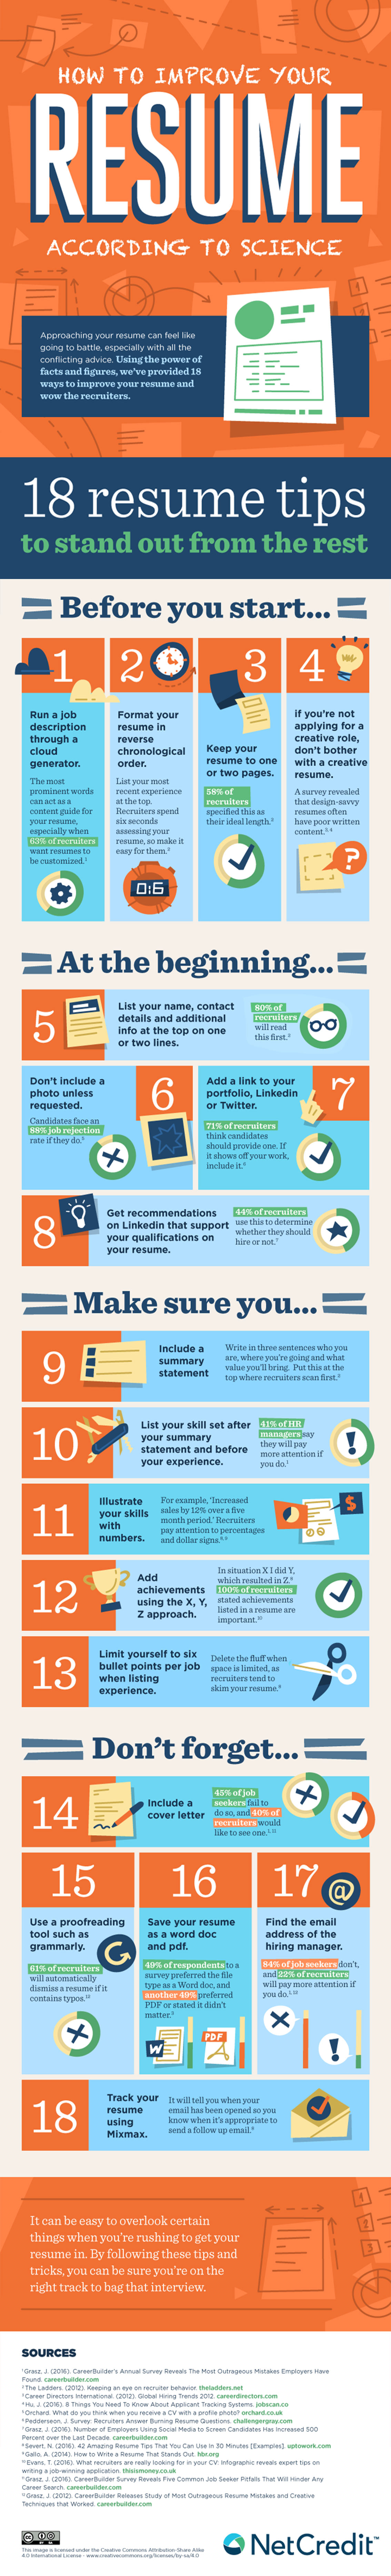 The Only Resume Cheat Sheet You Will Ever Need 18 Tips On Writing A Professional Resume Infographic